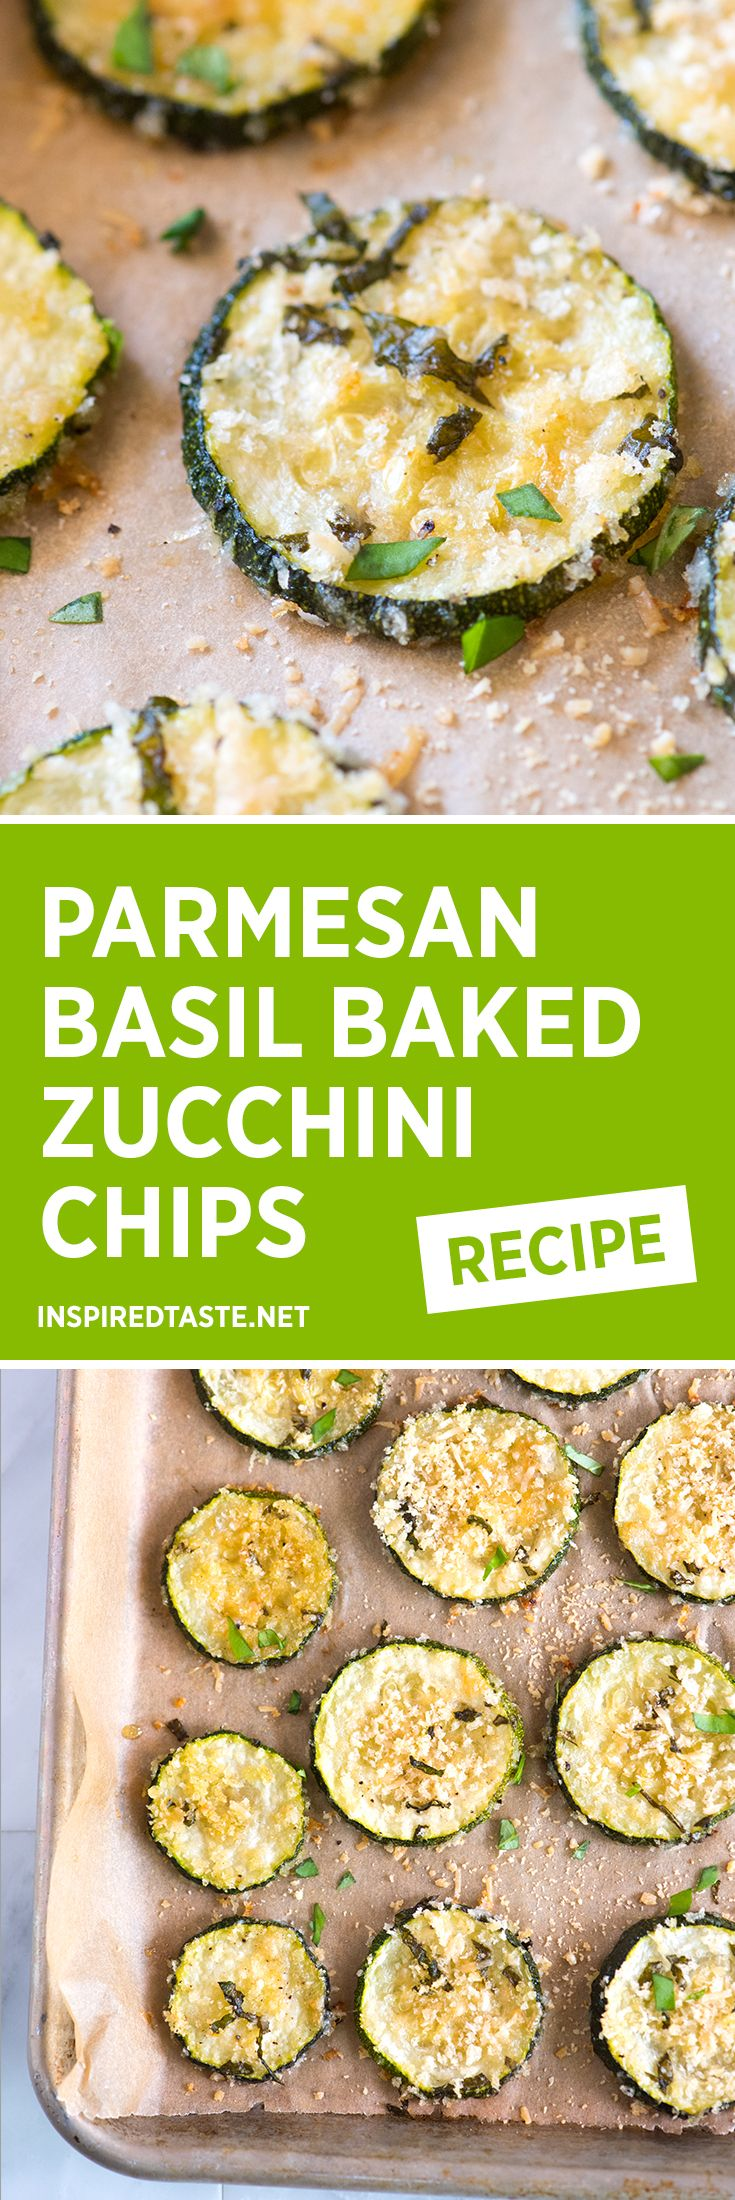 These easy, cheesy baked zucchini chips are addictive. They are perfect to serve with dinner or just as an afternoon snack.